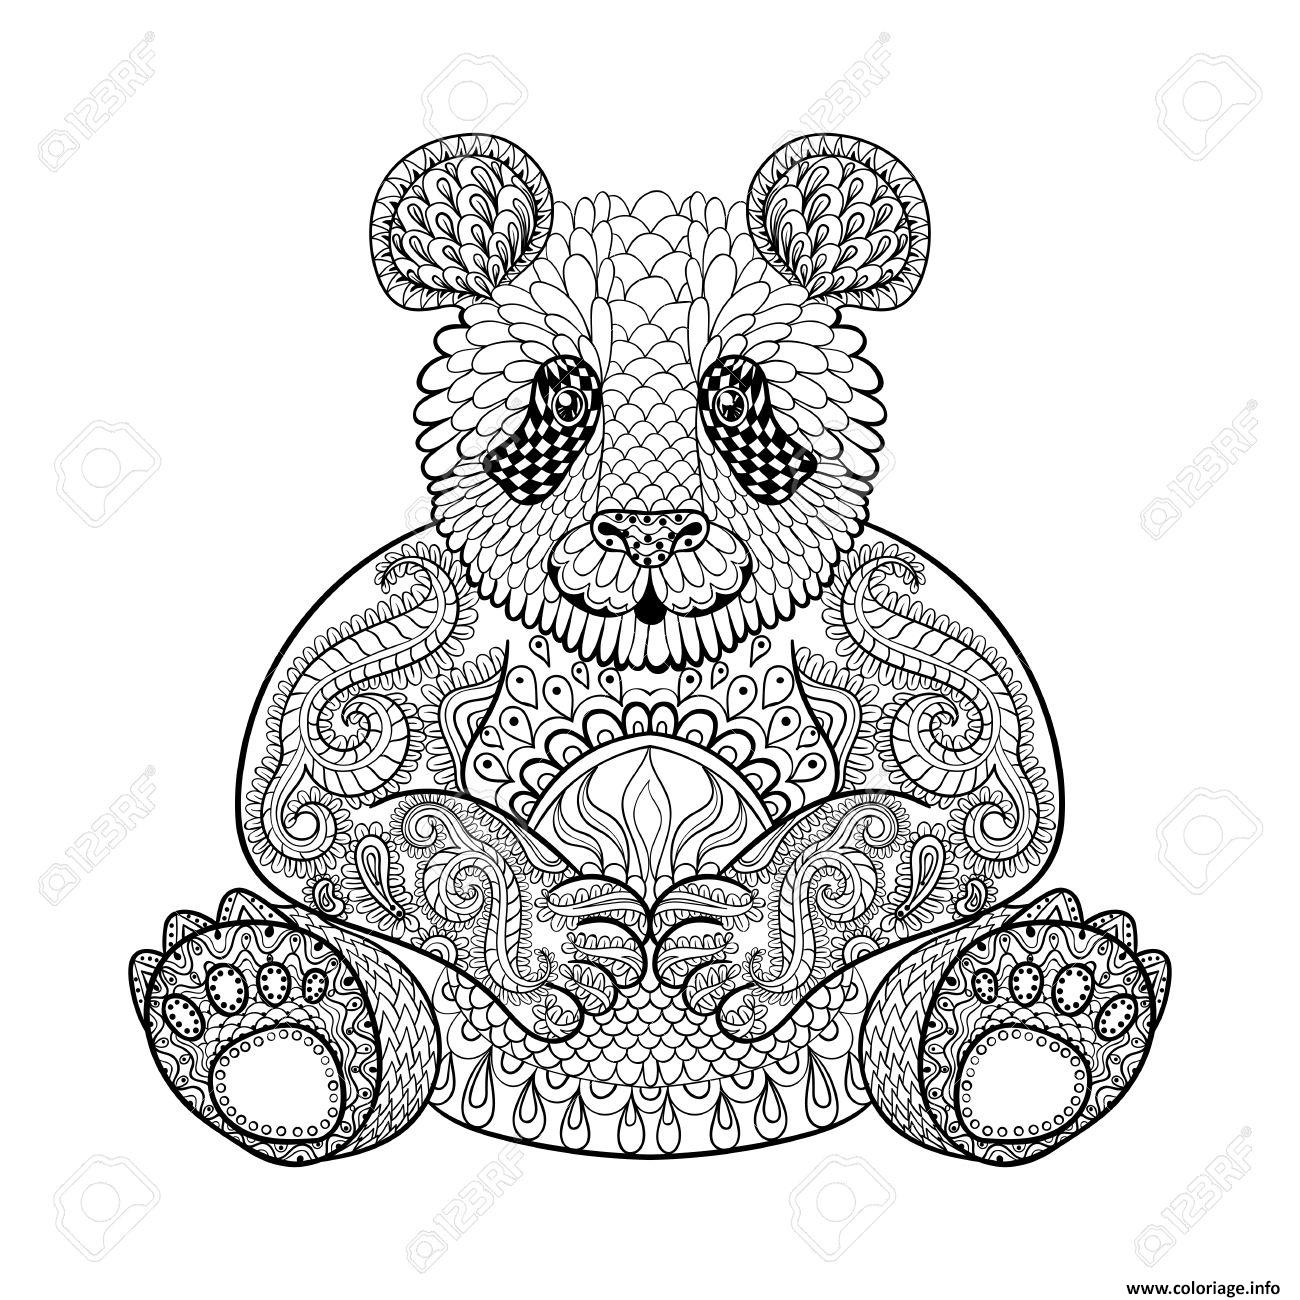 Coloriage panda adulte animaux zentangle difficile dessin - Coloriage a imprimer panda ...